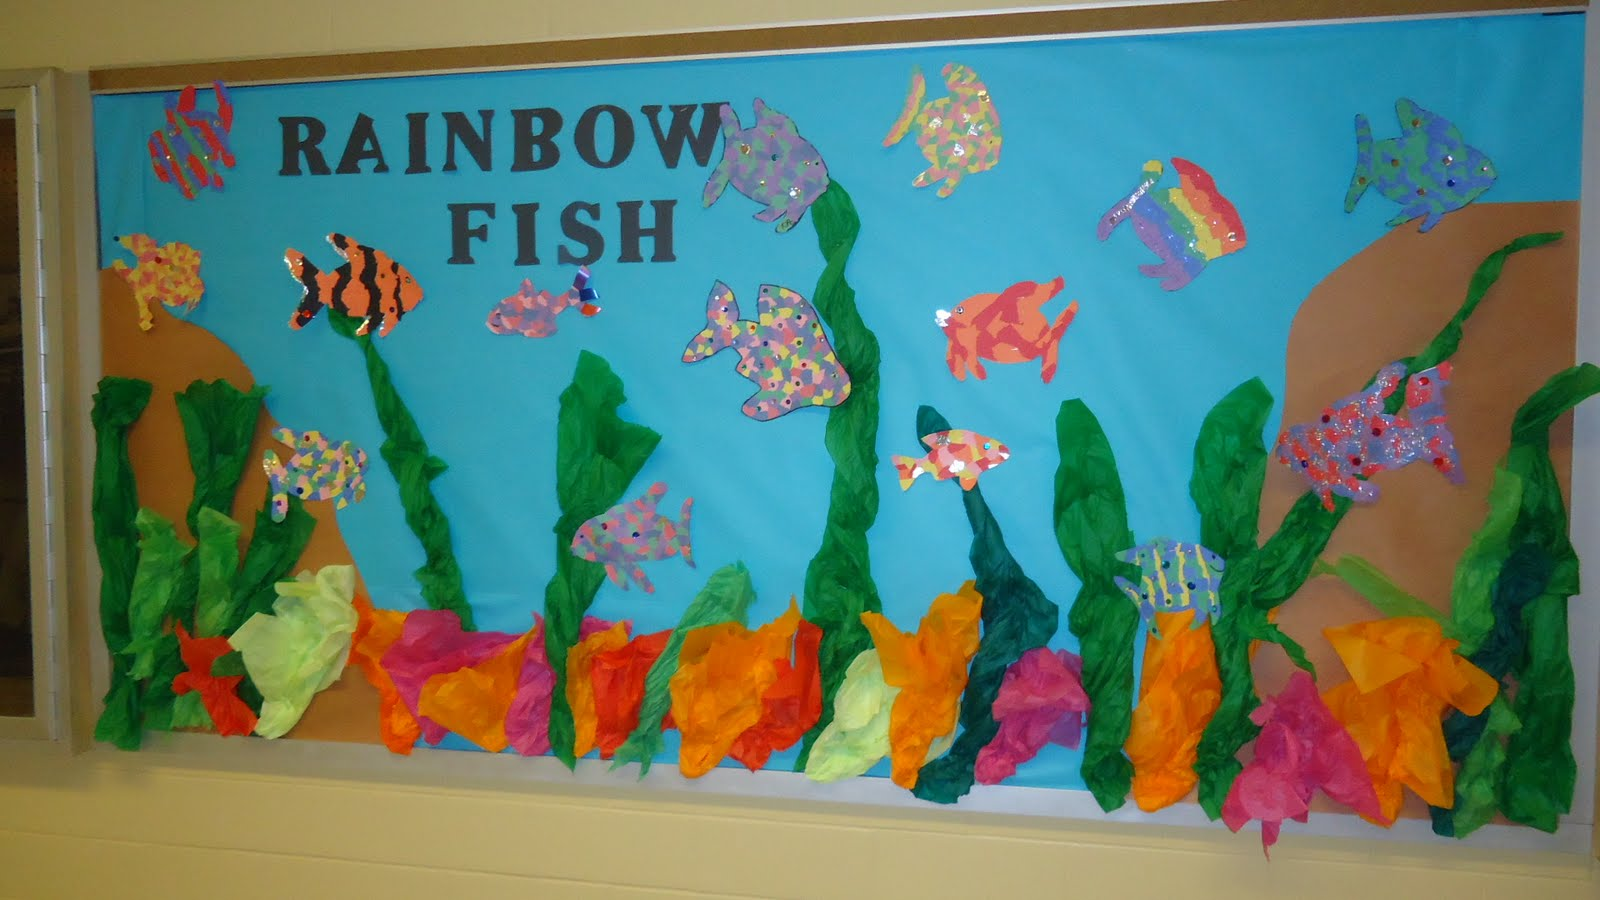 research paper bulletin board Under the sea theme mehr find this pin and more on classroom bulletin board ideas by nadia rolle under the sea themethe window paint is genius with paper fish and seaweed, etc.